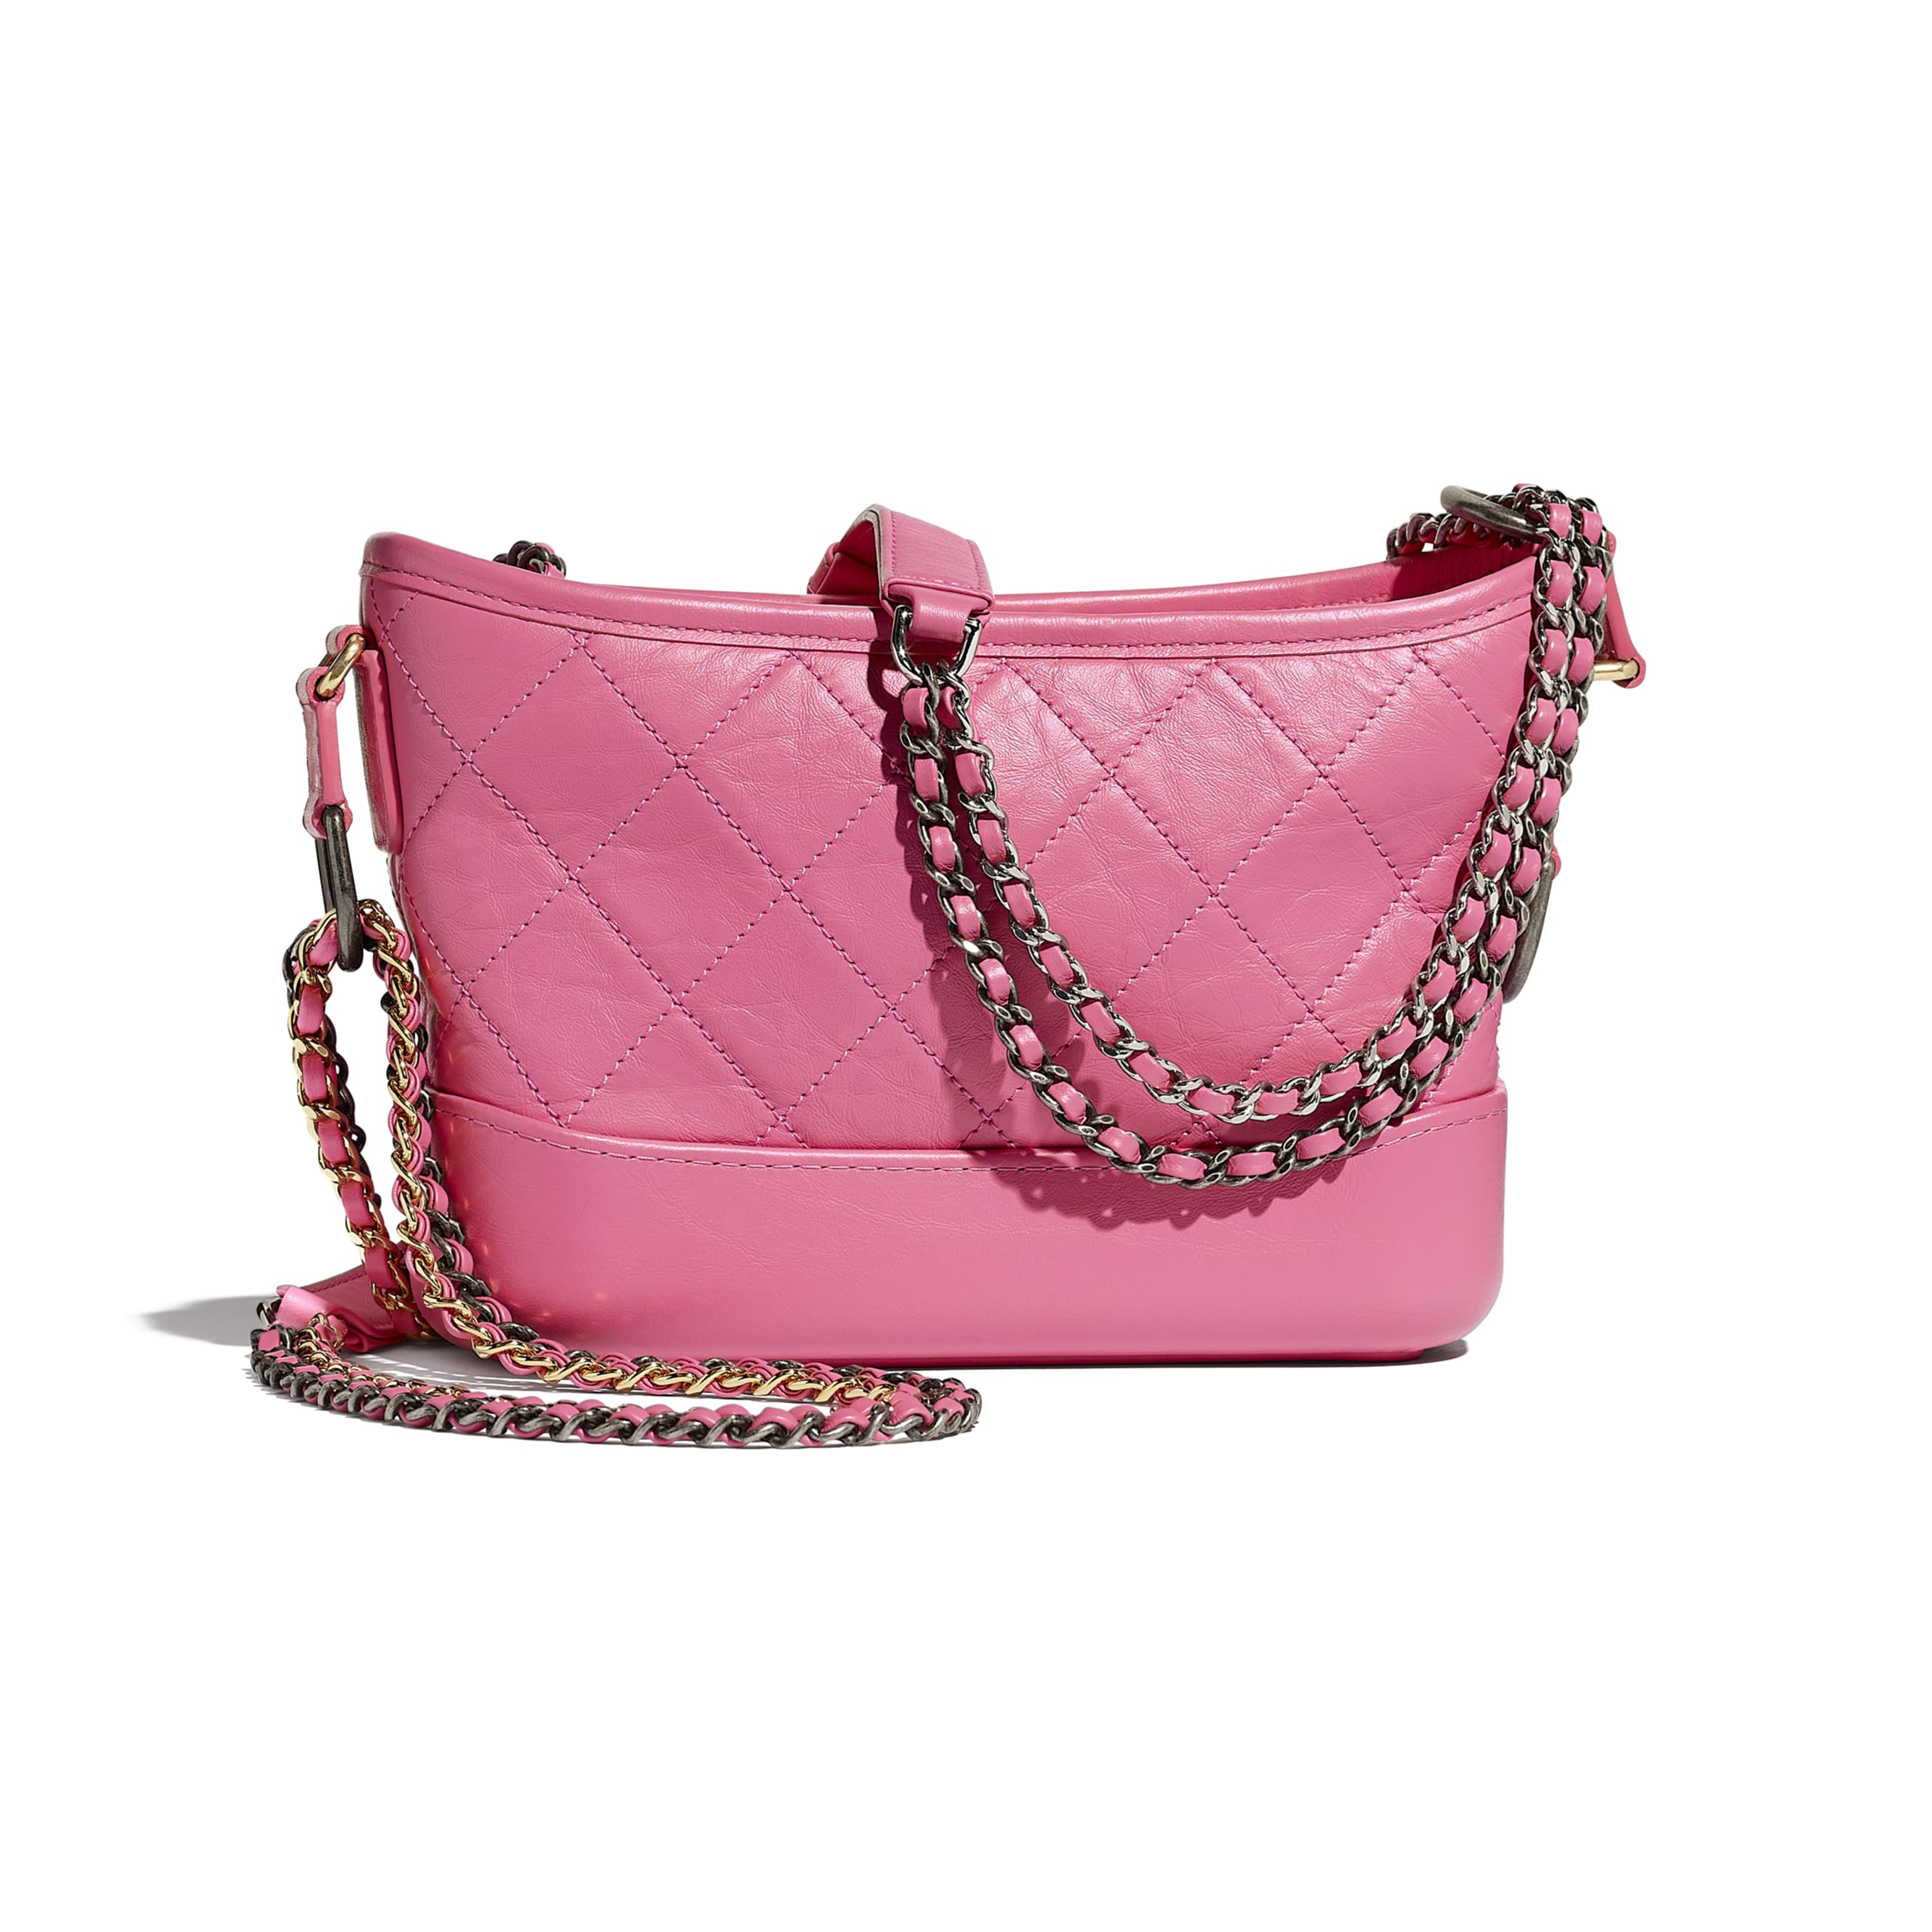 CHANEL'S GABRIELLE Small Hobo Bag - Pink - Aged Calfskin, Smooth Calfskin, Silver-Tone & Gold-Tone Metal - Alternative view - see standard sized version